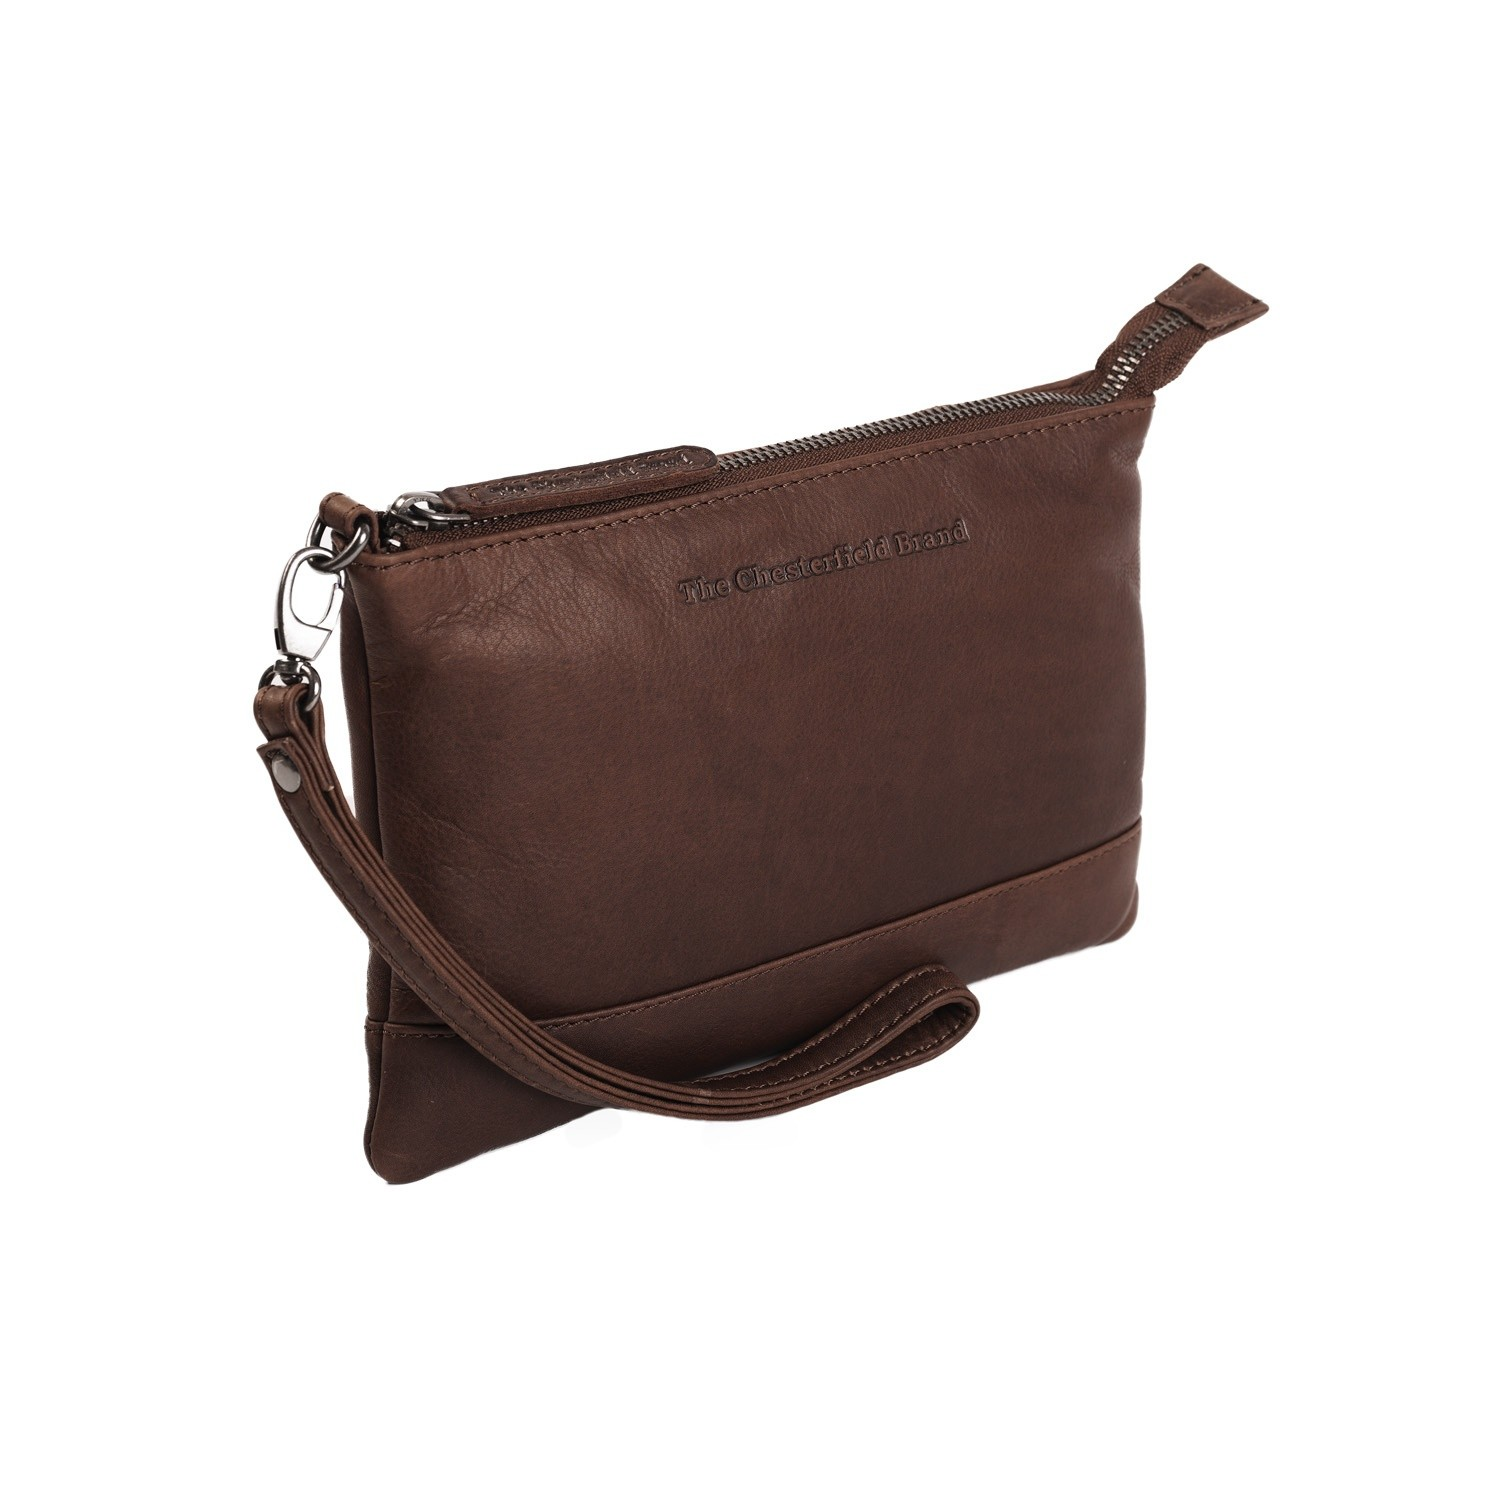 Bilde av Chesterfield Leather Clutch Brown Sue